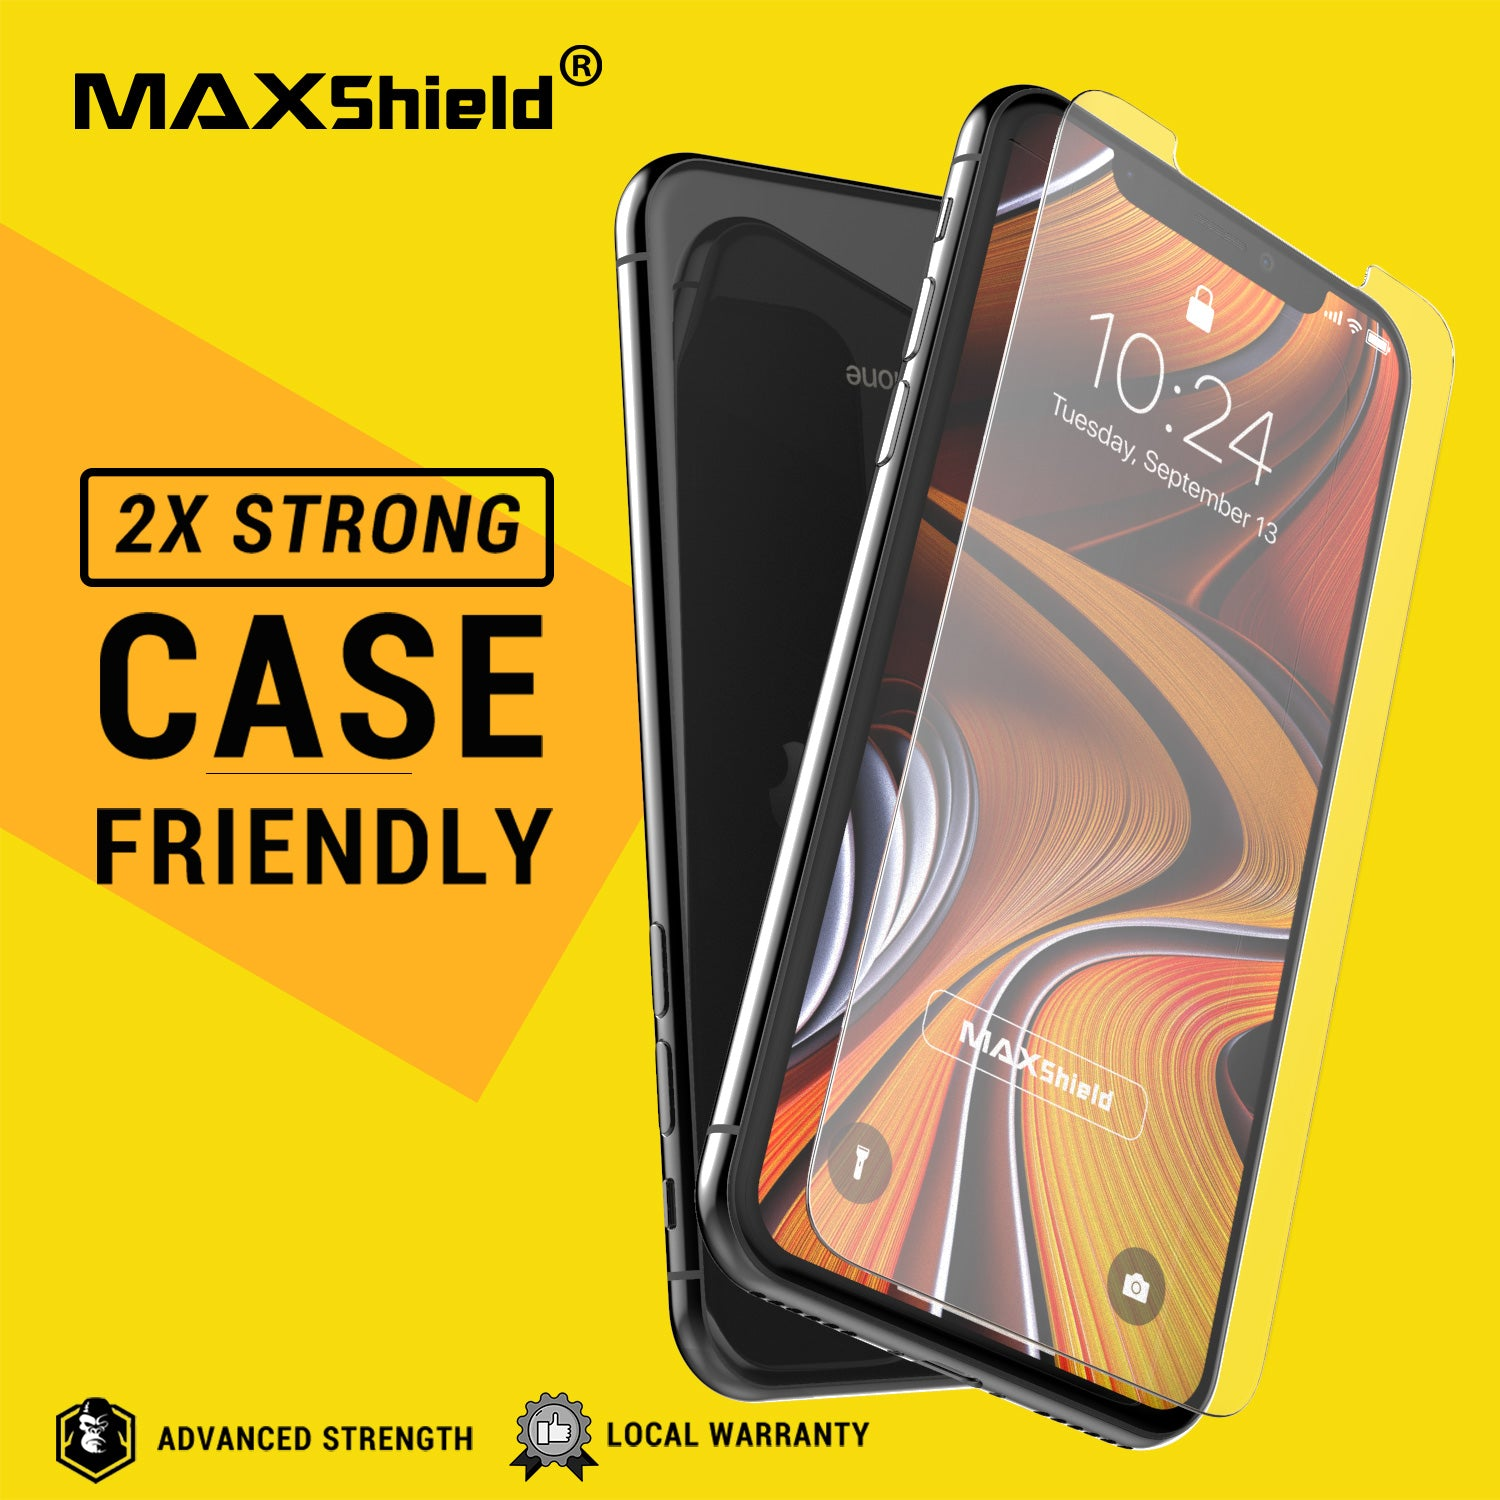 Apple iPhone XI 11 Pro Max Case, GLASS SCREEN PROTECTOR, MAXSHIELD PROTECTOR